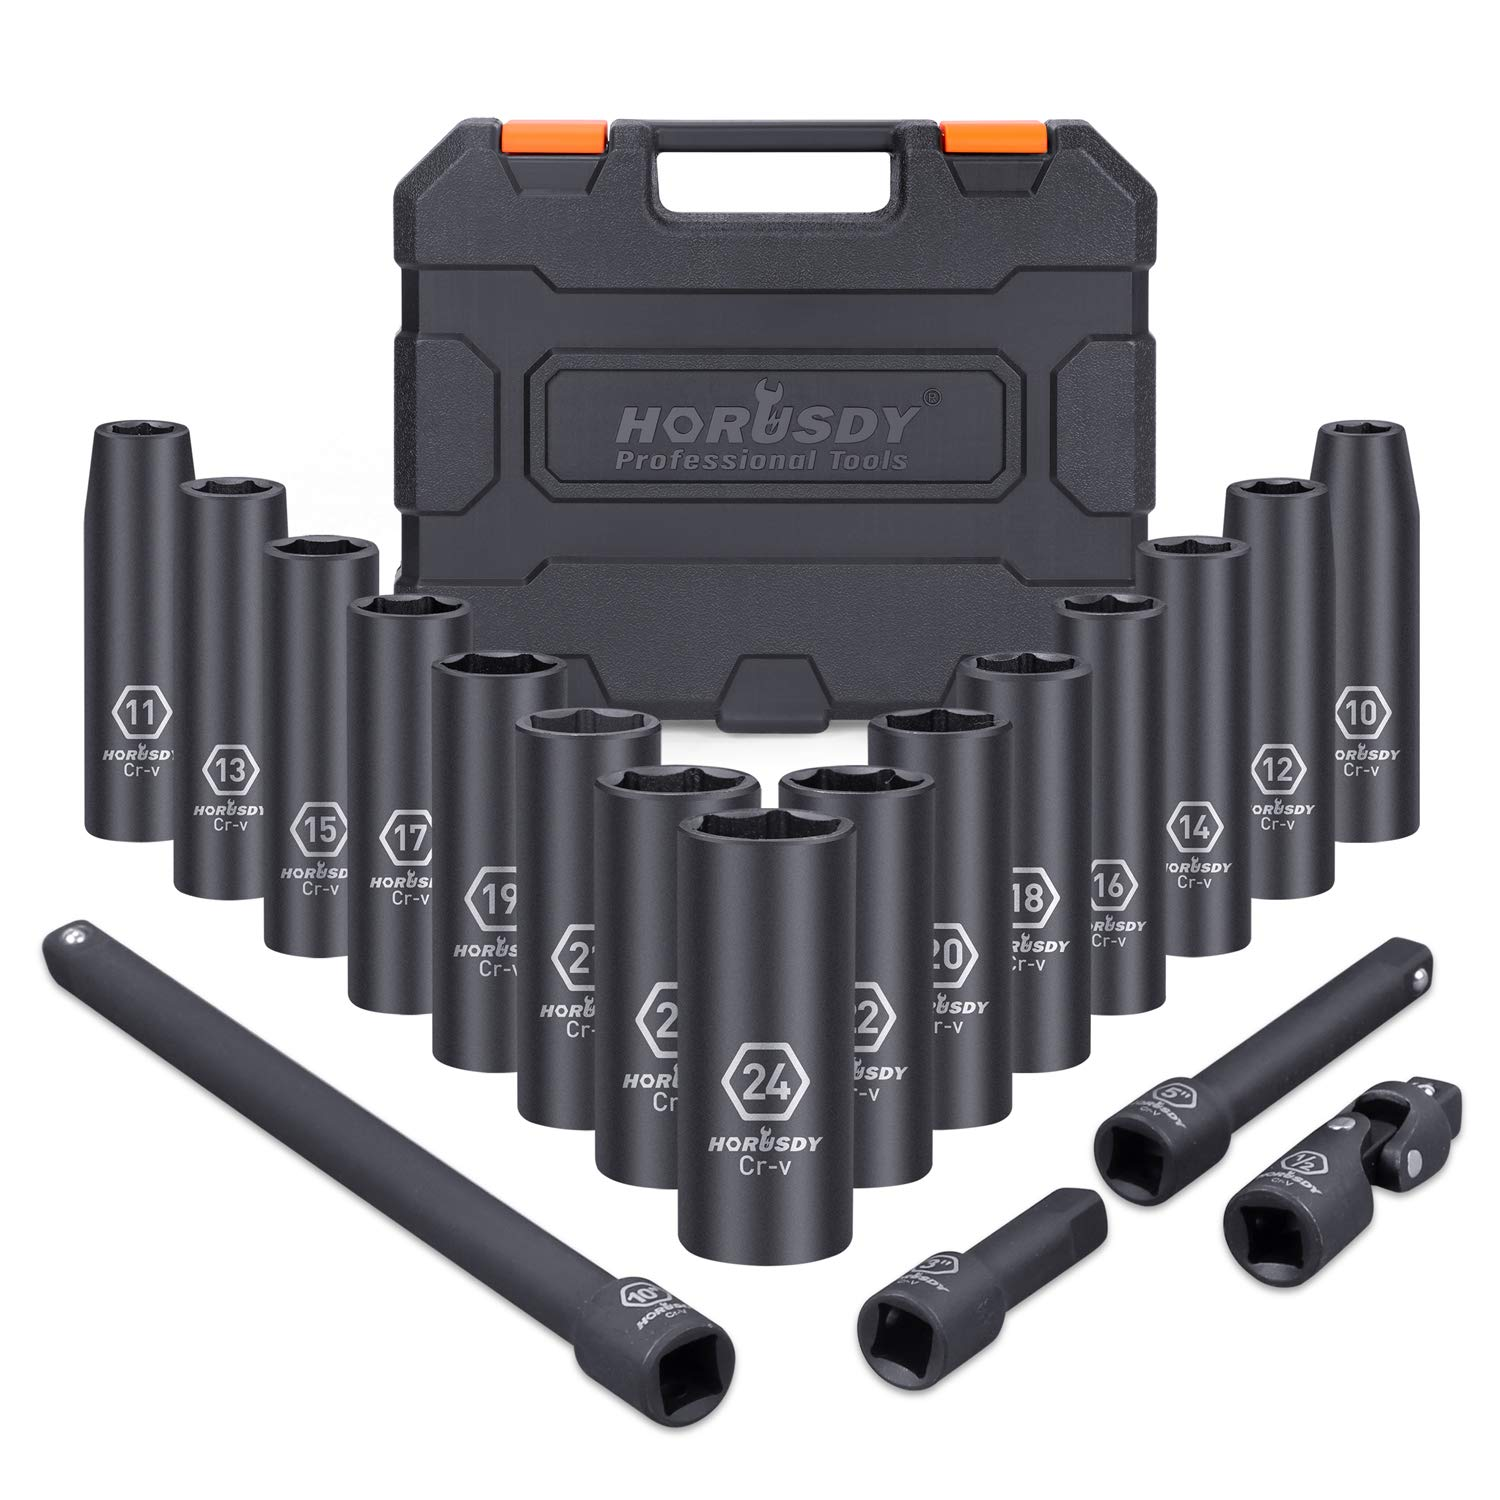 HORUSDY 1/2-Inch Drive Deep Impact Socket Set, 19-Piece 10mm - 24mm 6-Point Metric Drive Sockets Set by HORUSDY